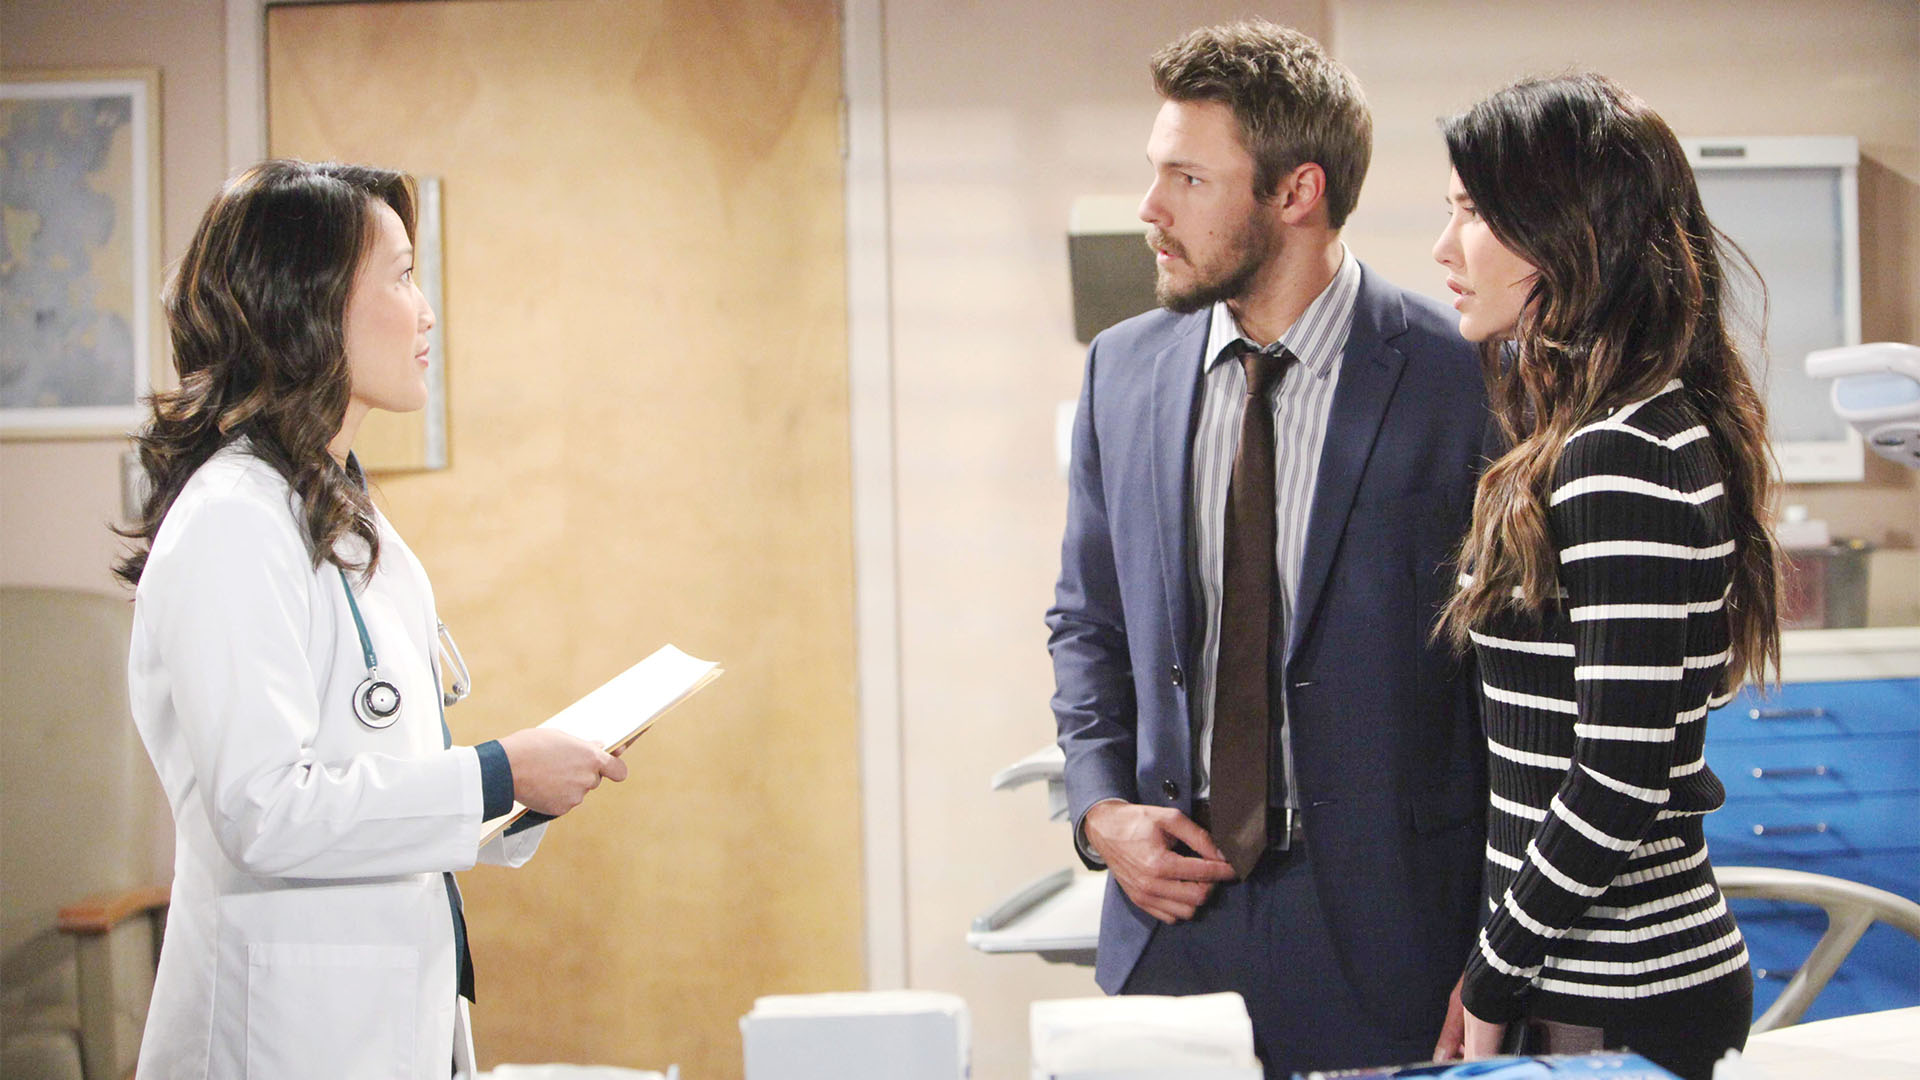 Steffy and Liam receive life-altering news that causes him excitement and her, concern.